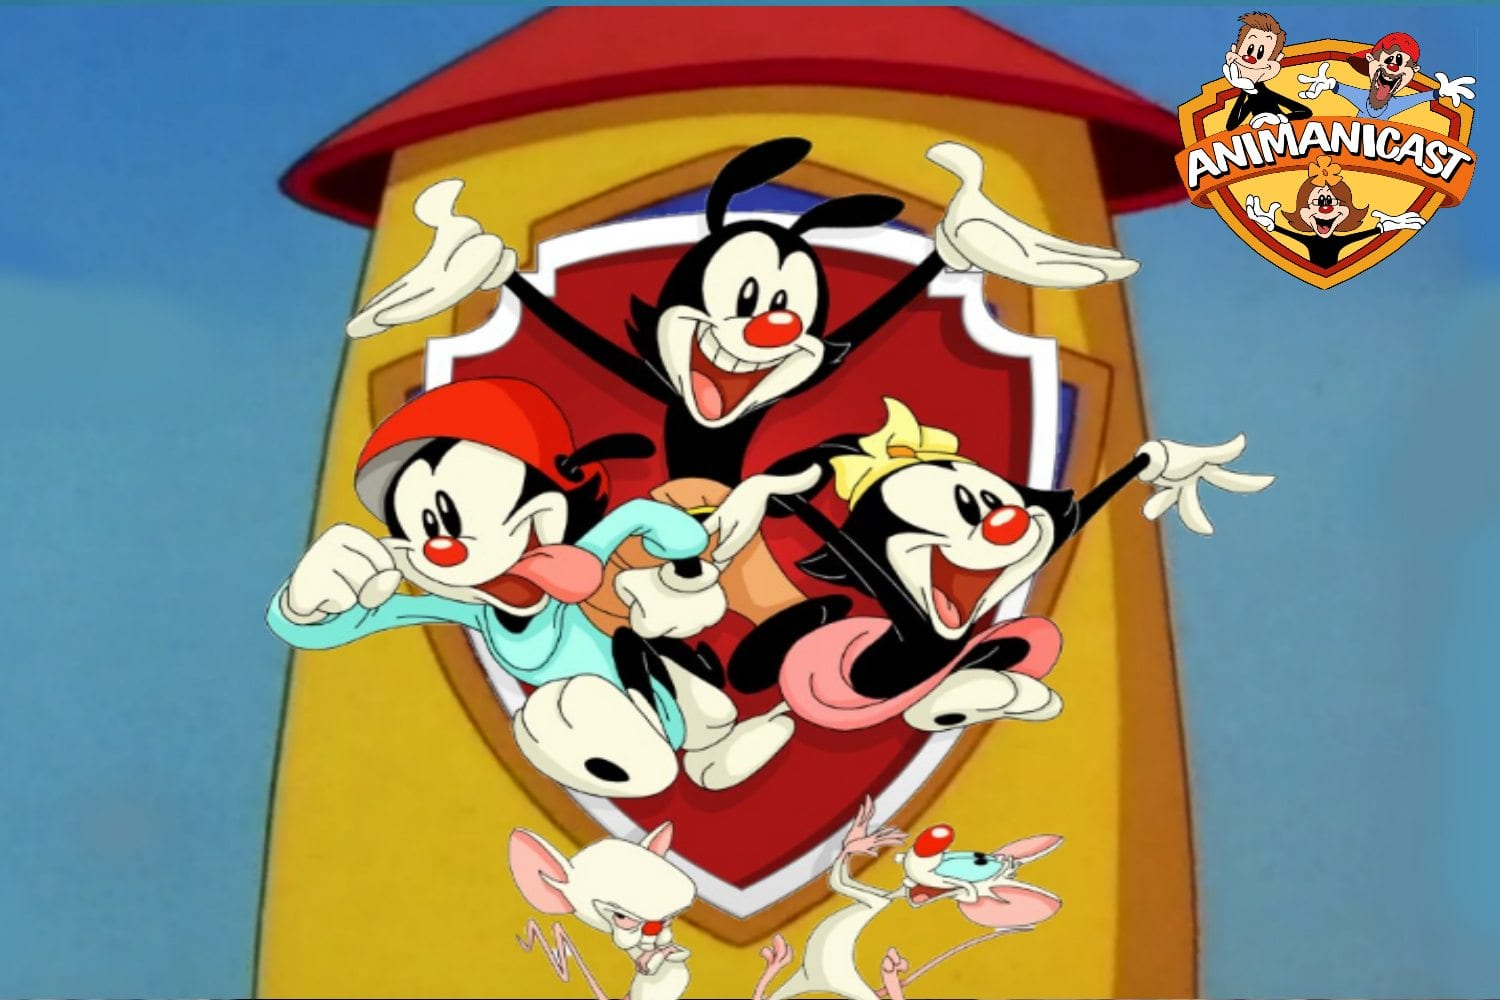 Animanicast #68b: Animaniacs is Getting Rebooted, but Will the Original Creative Staff Return?